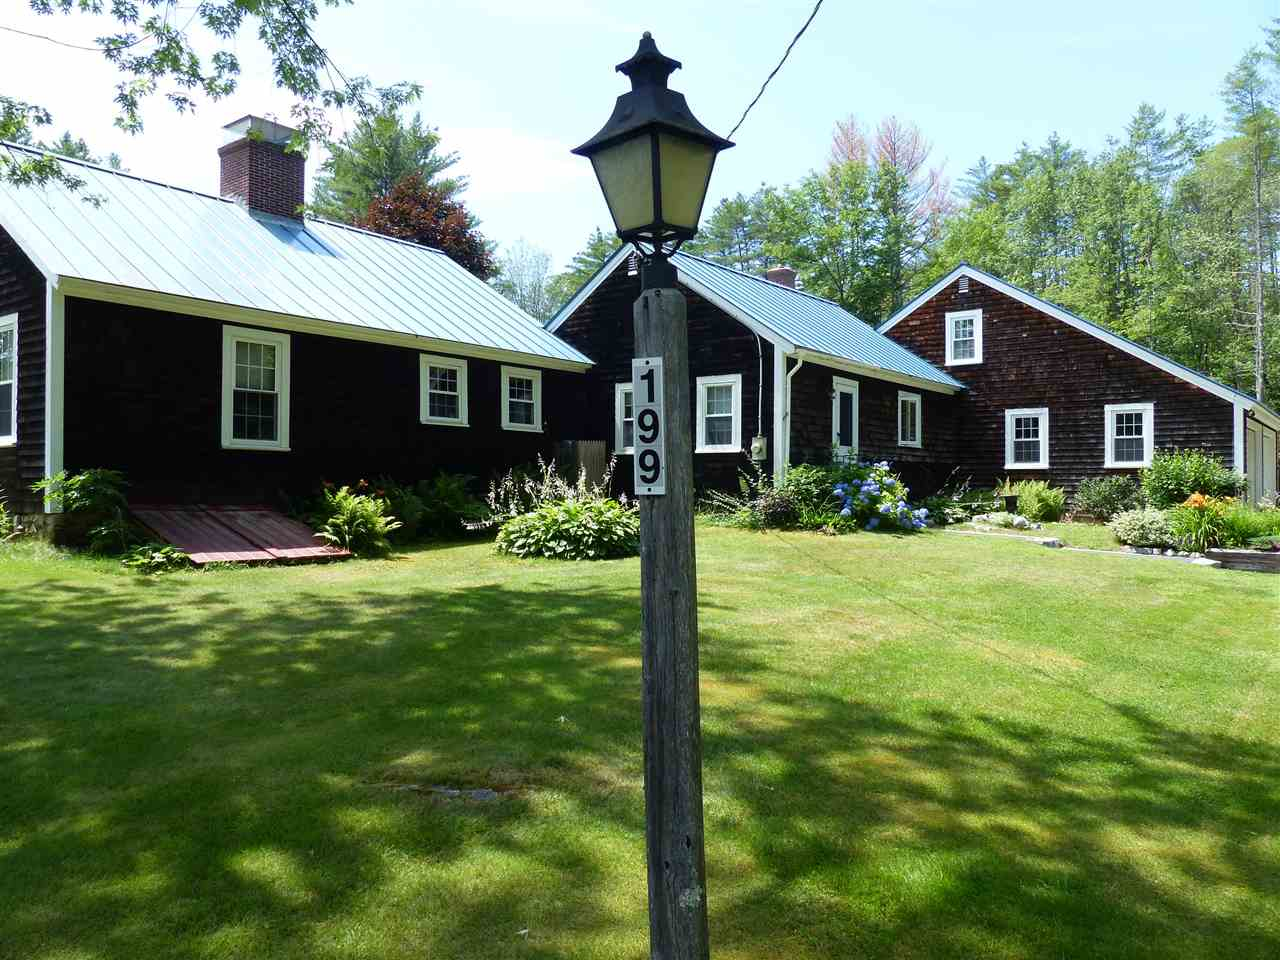 Property for sale at 199 Squam Lake Road, Sandwich,  New Hampshire 03227